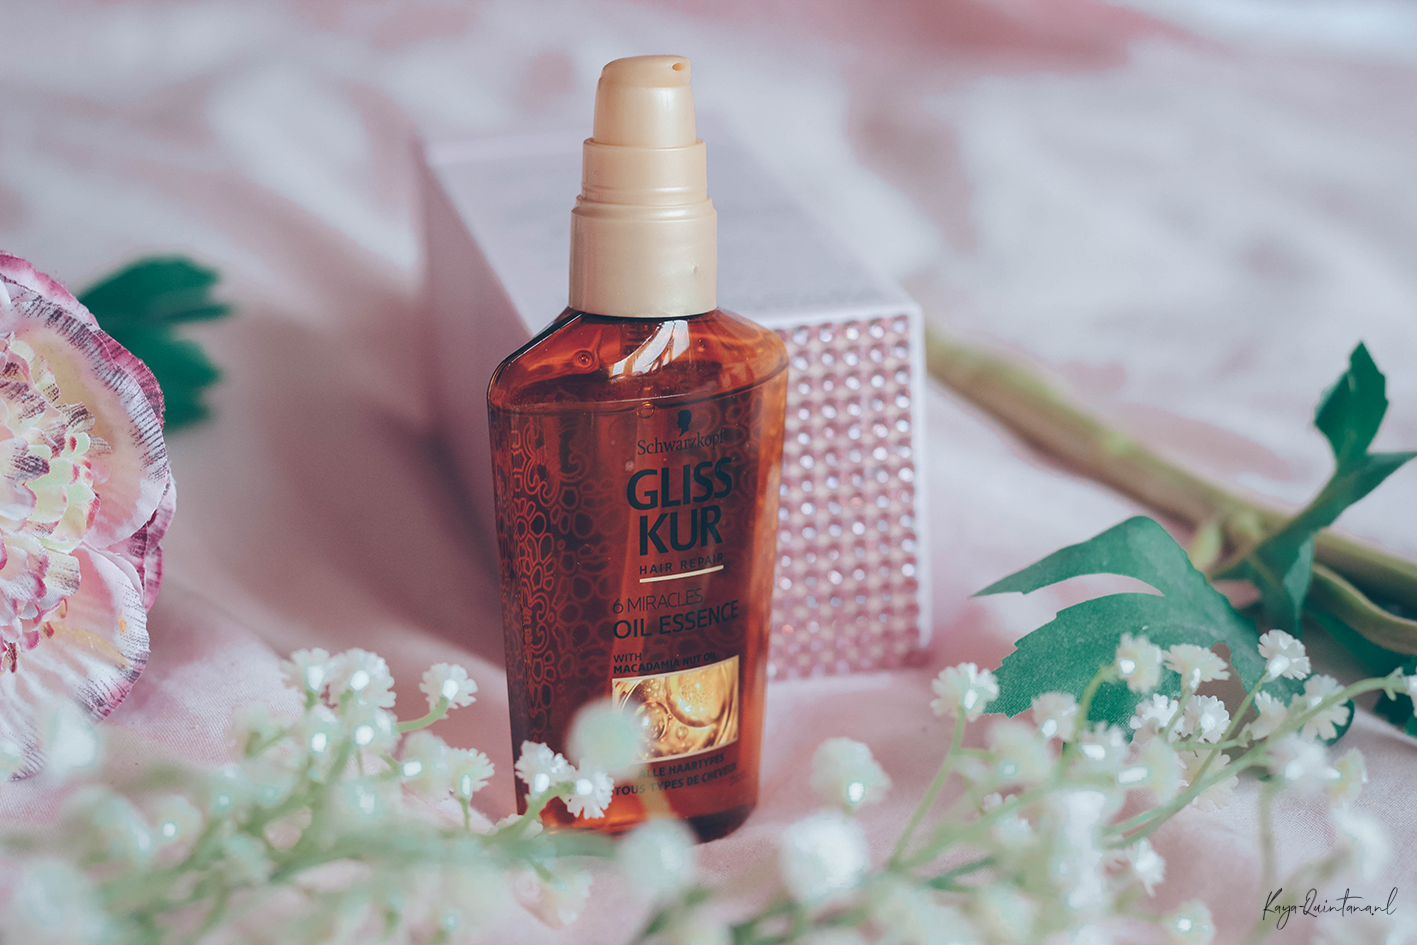 Gliss Kur 6 miracles oil essence